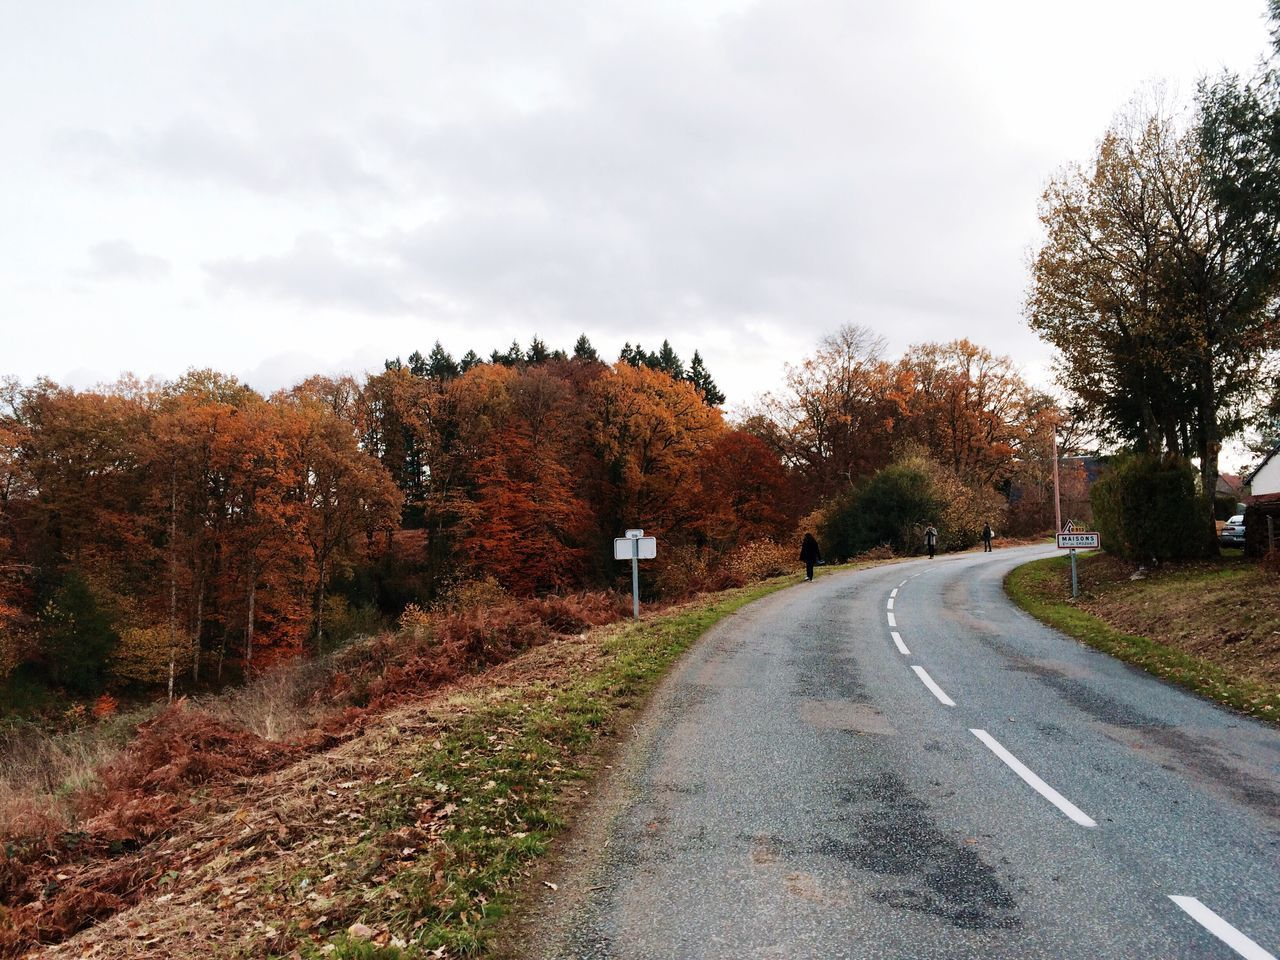 Tree Road The Way Forward EyeEmNewHere Diminishing Perspective Autumn Transportation Nature Outdoors Cloud - Sky No People Scenics Landscape Beauty In Nature France Creuse Country Life Country Road French Countryside Countryside Rural France Rural Scenes On The Road On The Move The Great Outdoors - 2017 EyeEm Awards